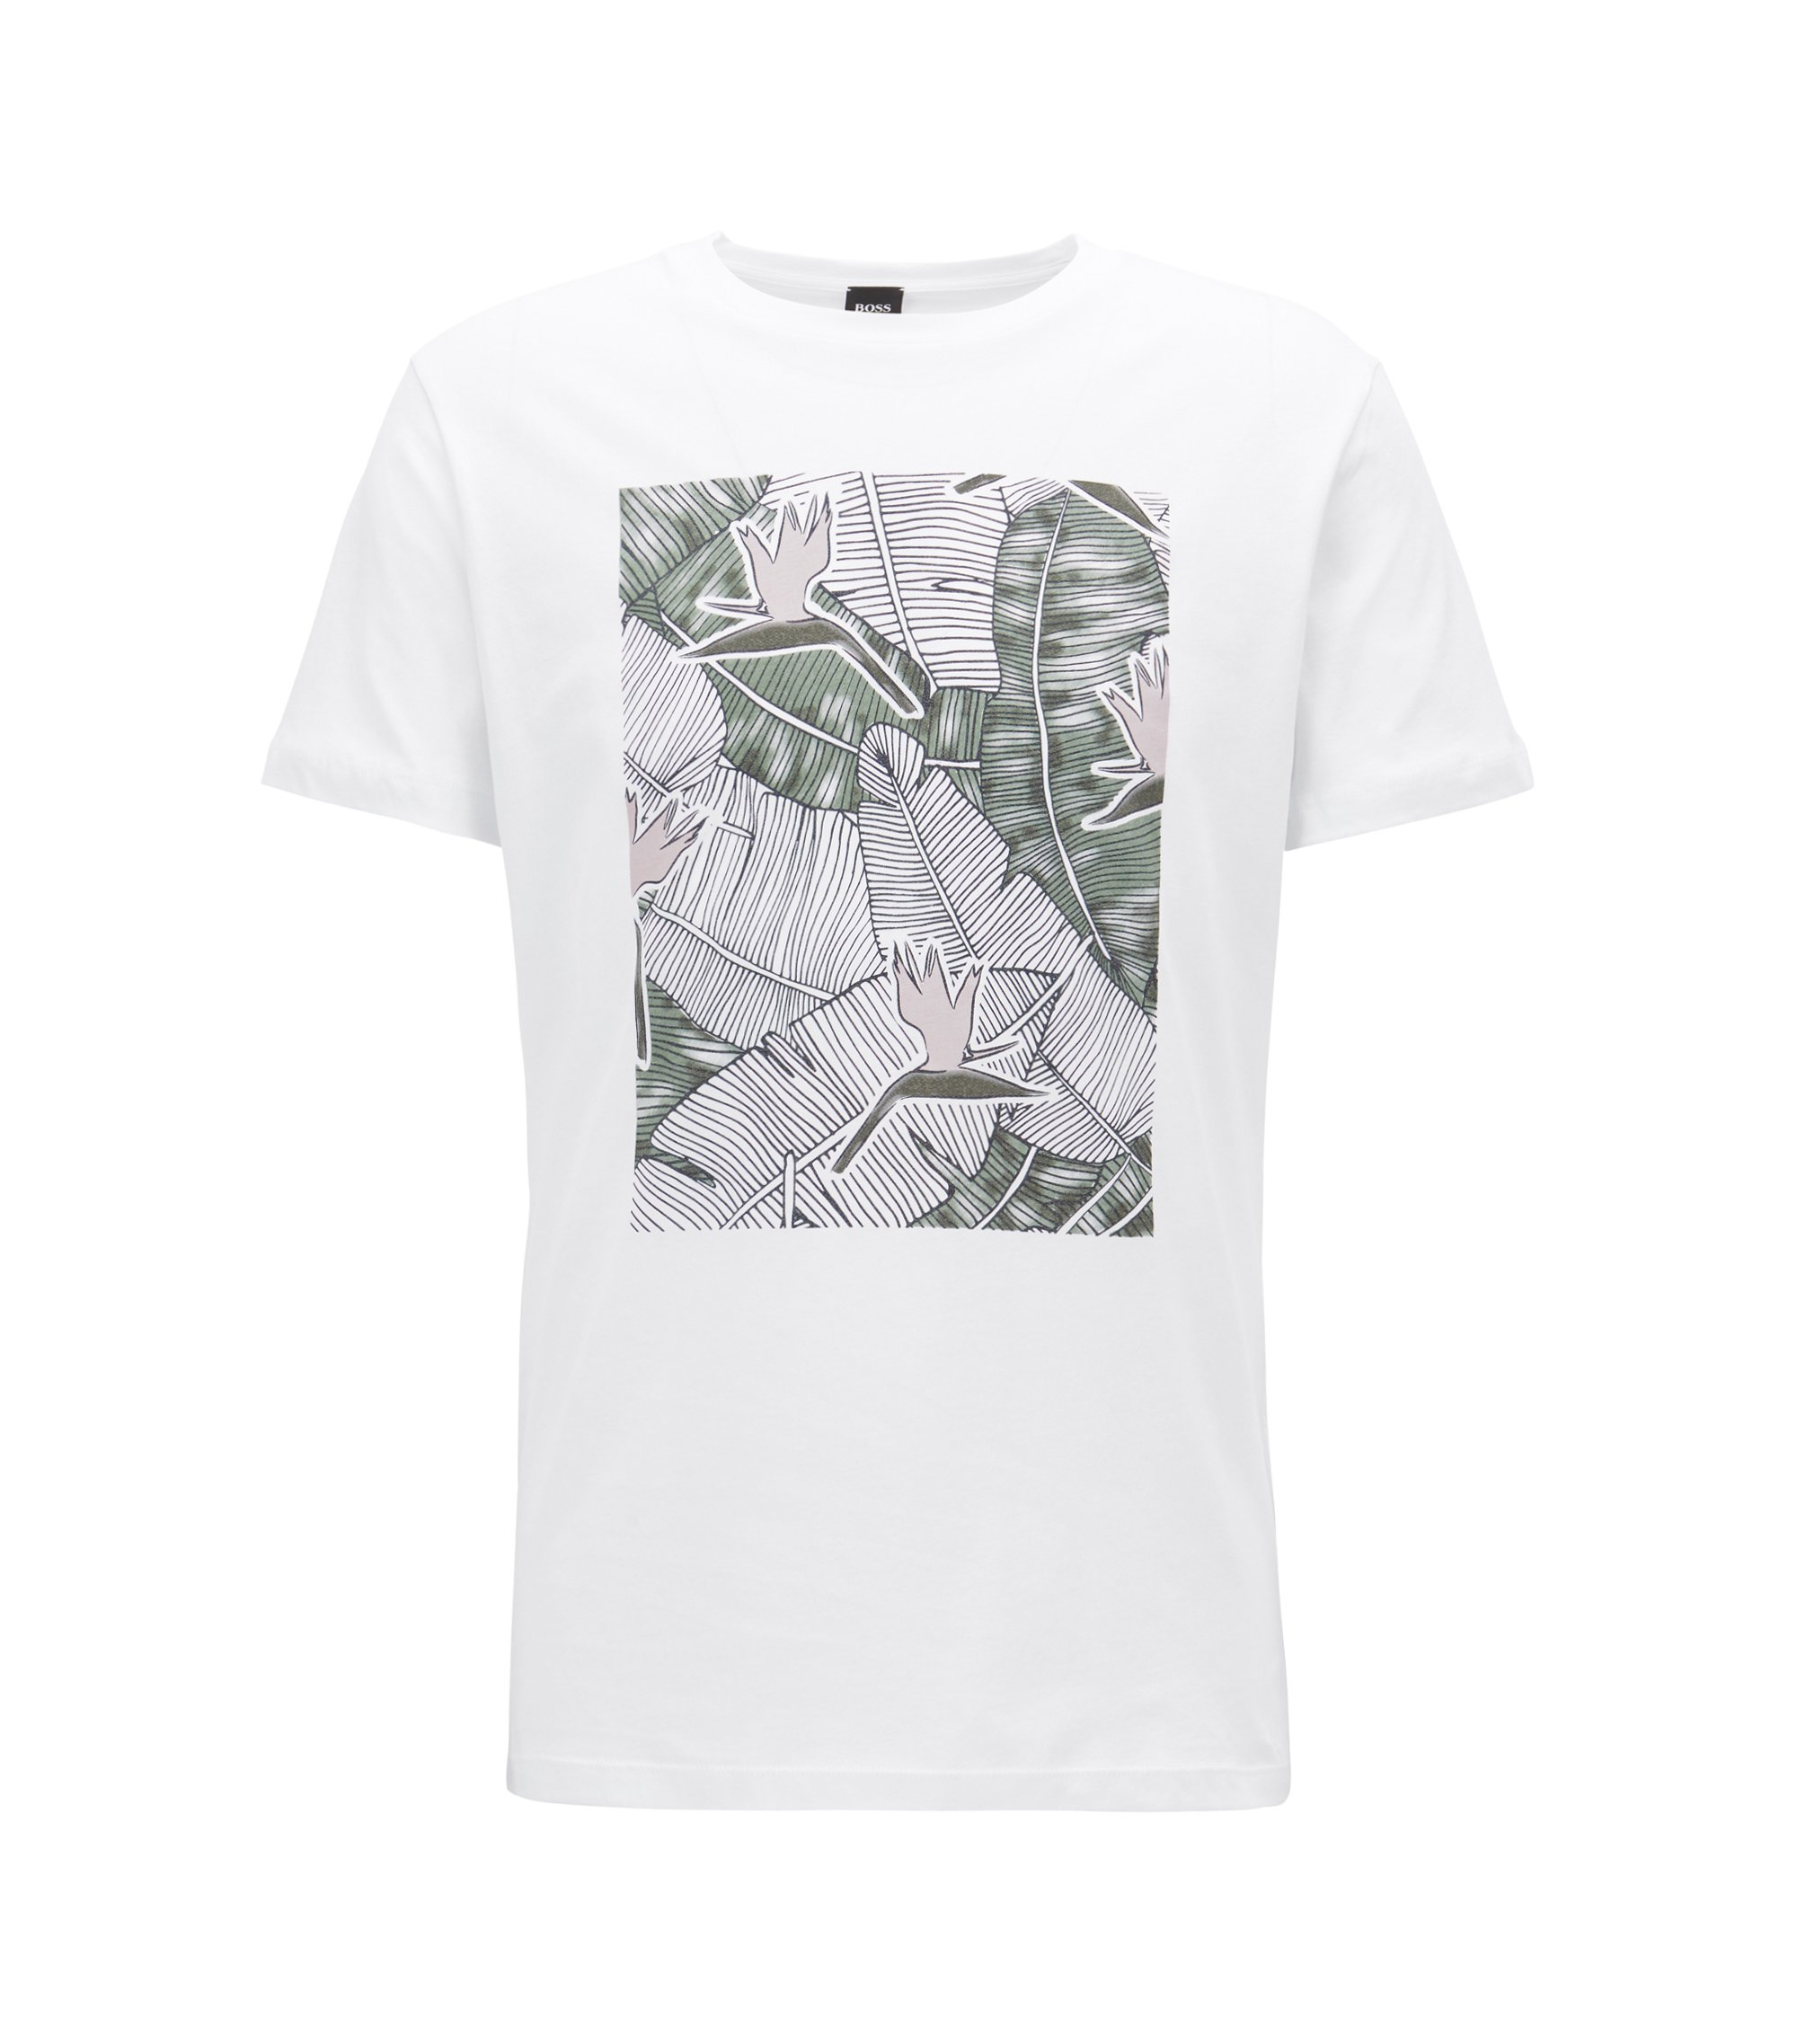 Graphic-print T-shirt in washed cotton jersey, White